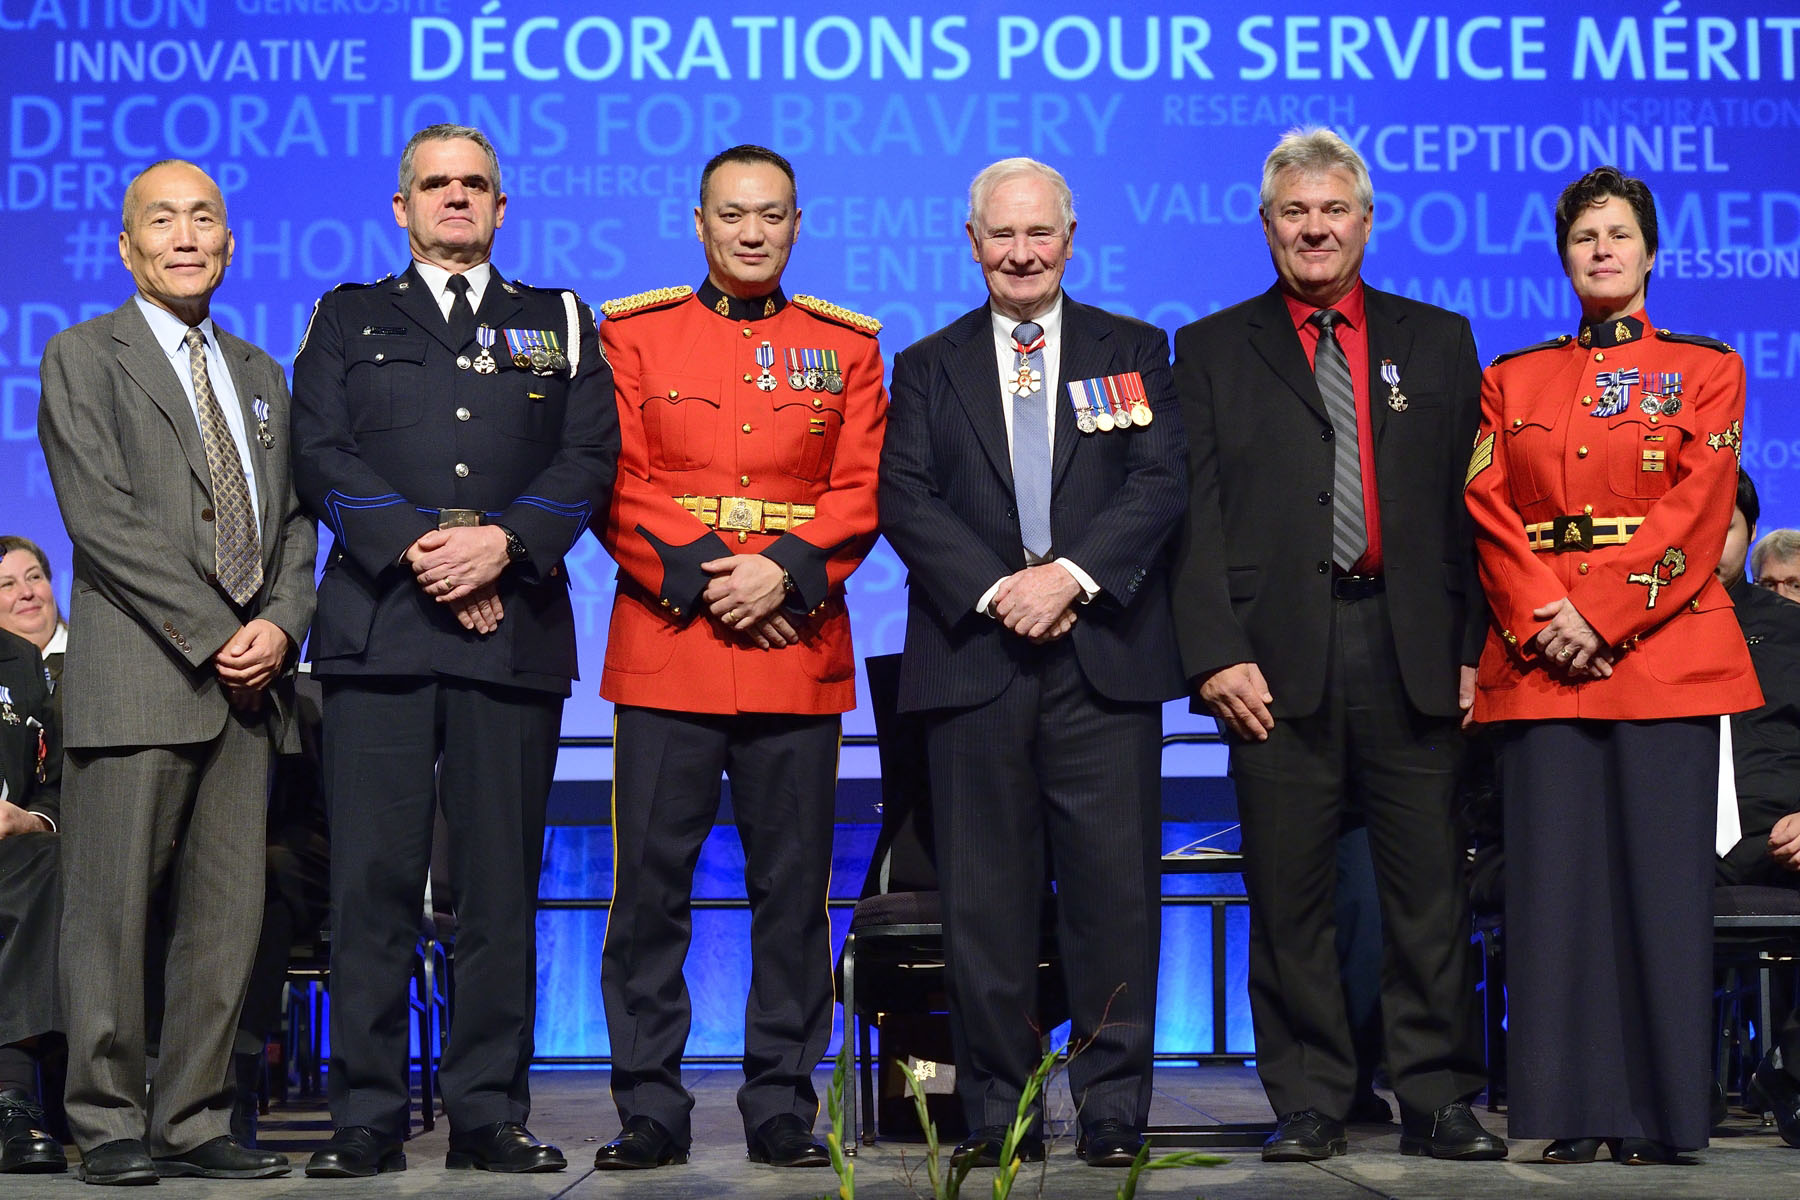 In 2000, constables Ashford, Ng and Wong, Corporal Gyorfi, Sergeant MacDonald, and civilian member Ma represented the RCMP within an international law enforcement team tracking heroin traffickers in Fiji. Their successful covert operation led to the capture of seven traffickers and the seizure of 350 kilograms of heroin destined for Canadian markets. Equally impressive, these members undertook their work during a political coup and in a hostile environment at great peril to themselves.